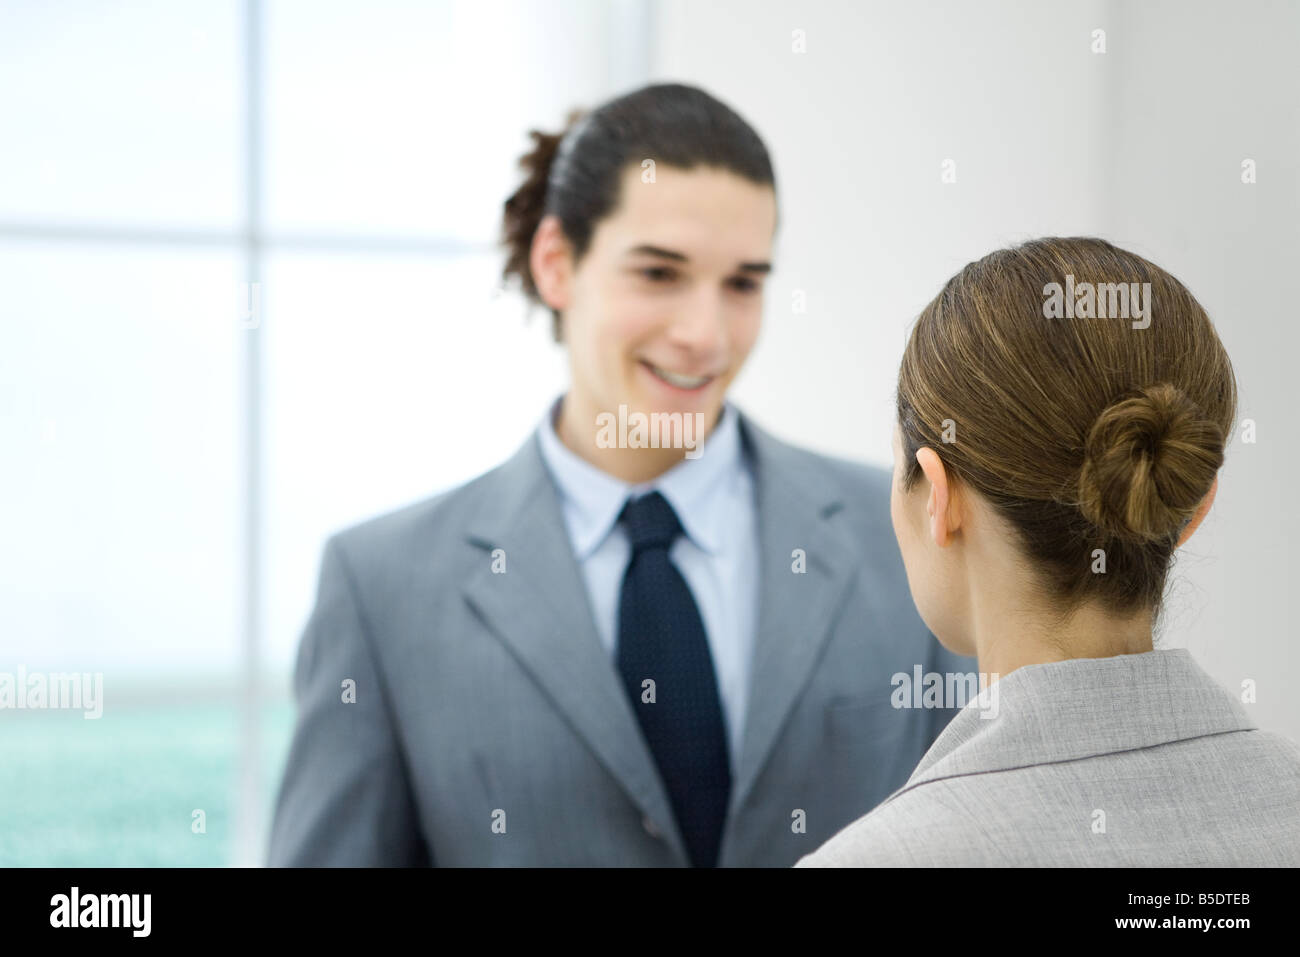 Professional young man facing female colleague, smiling - Stock Image